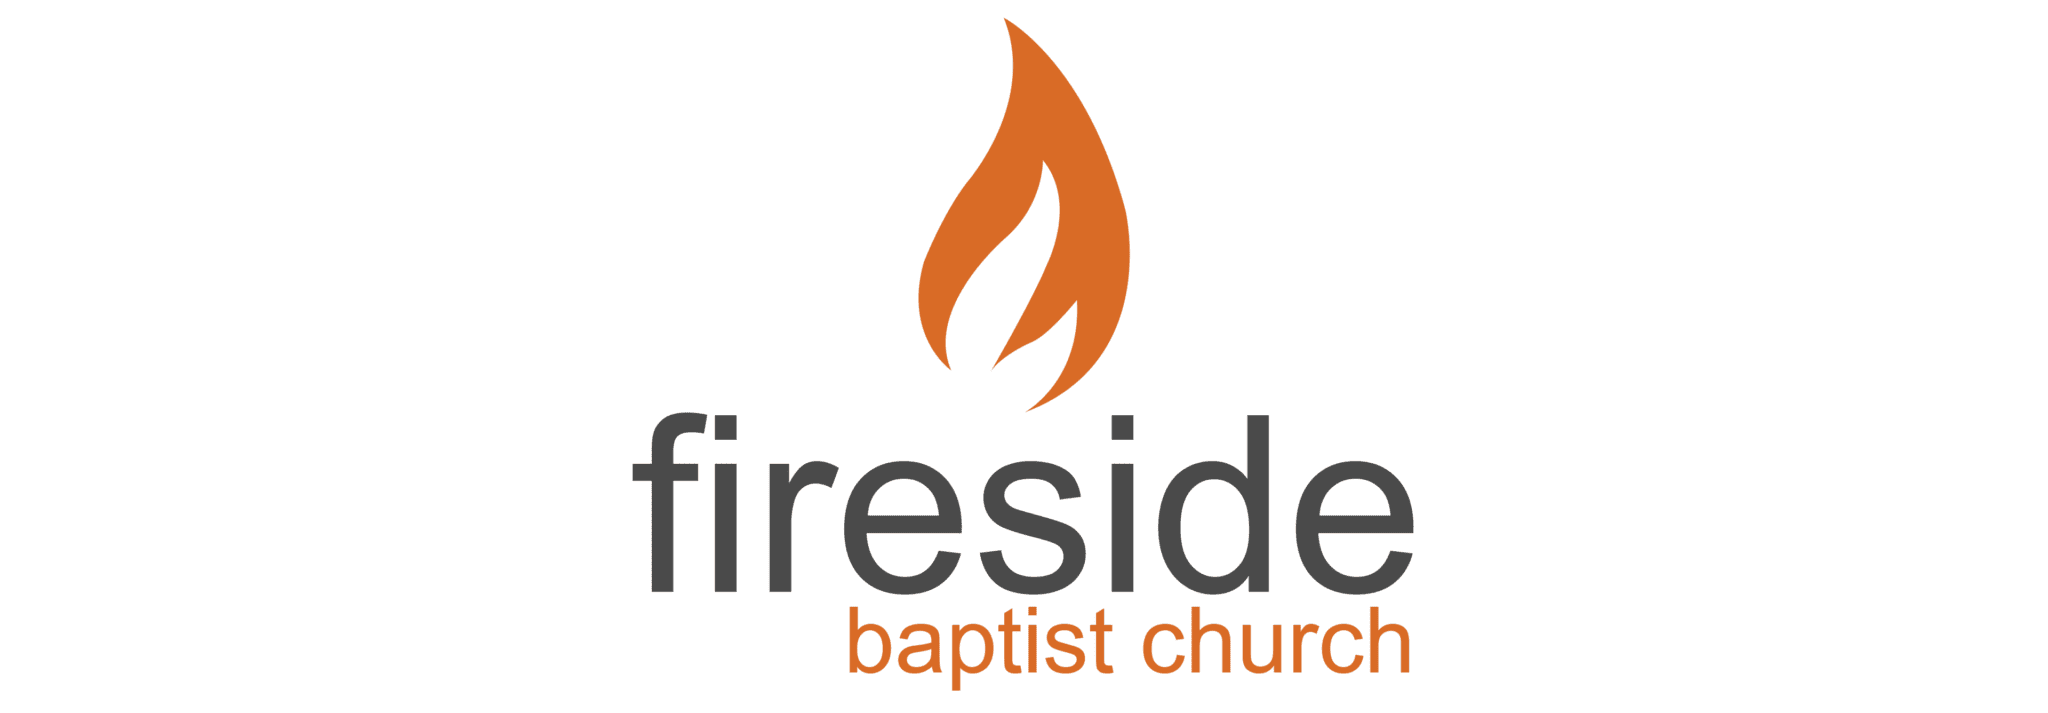 fireside baptist without bg copy